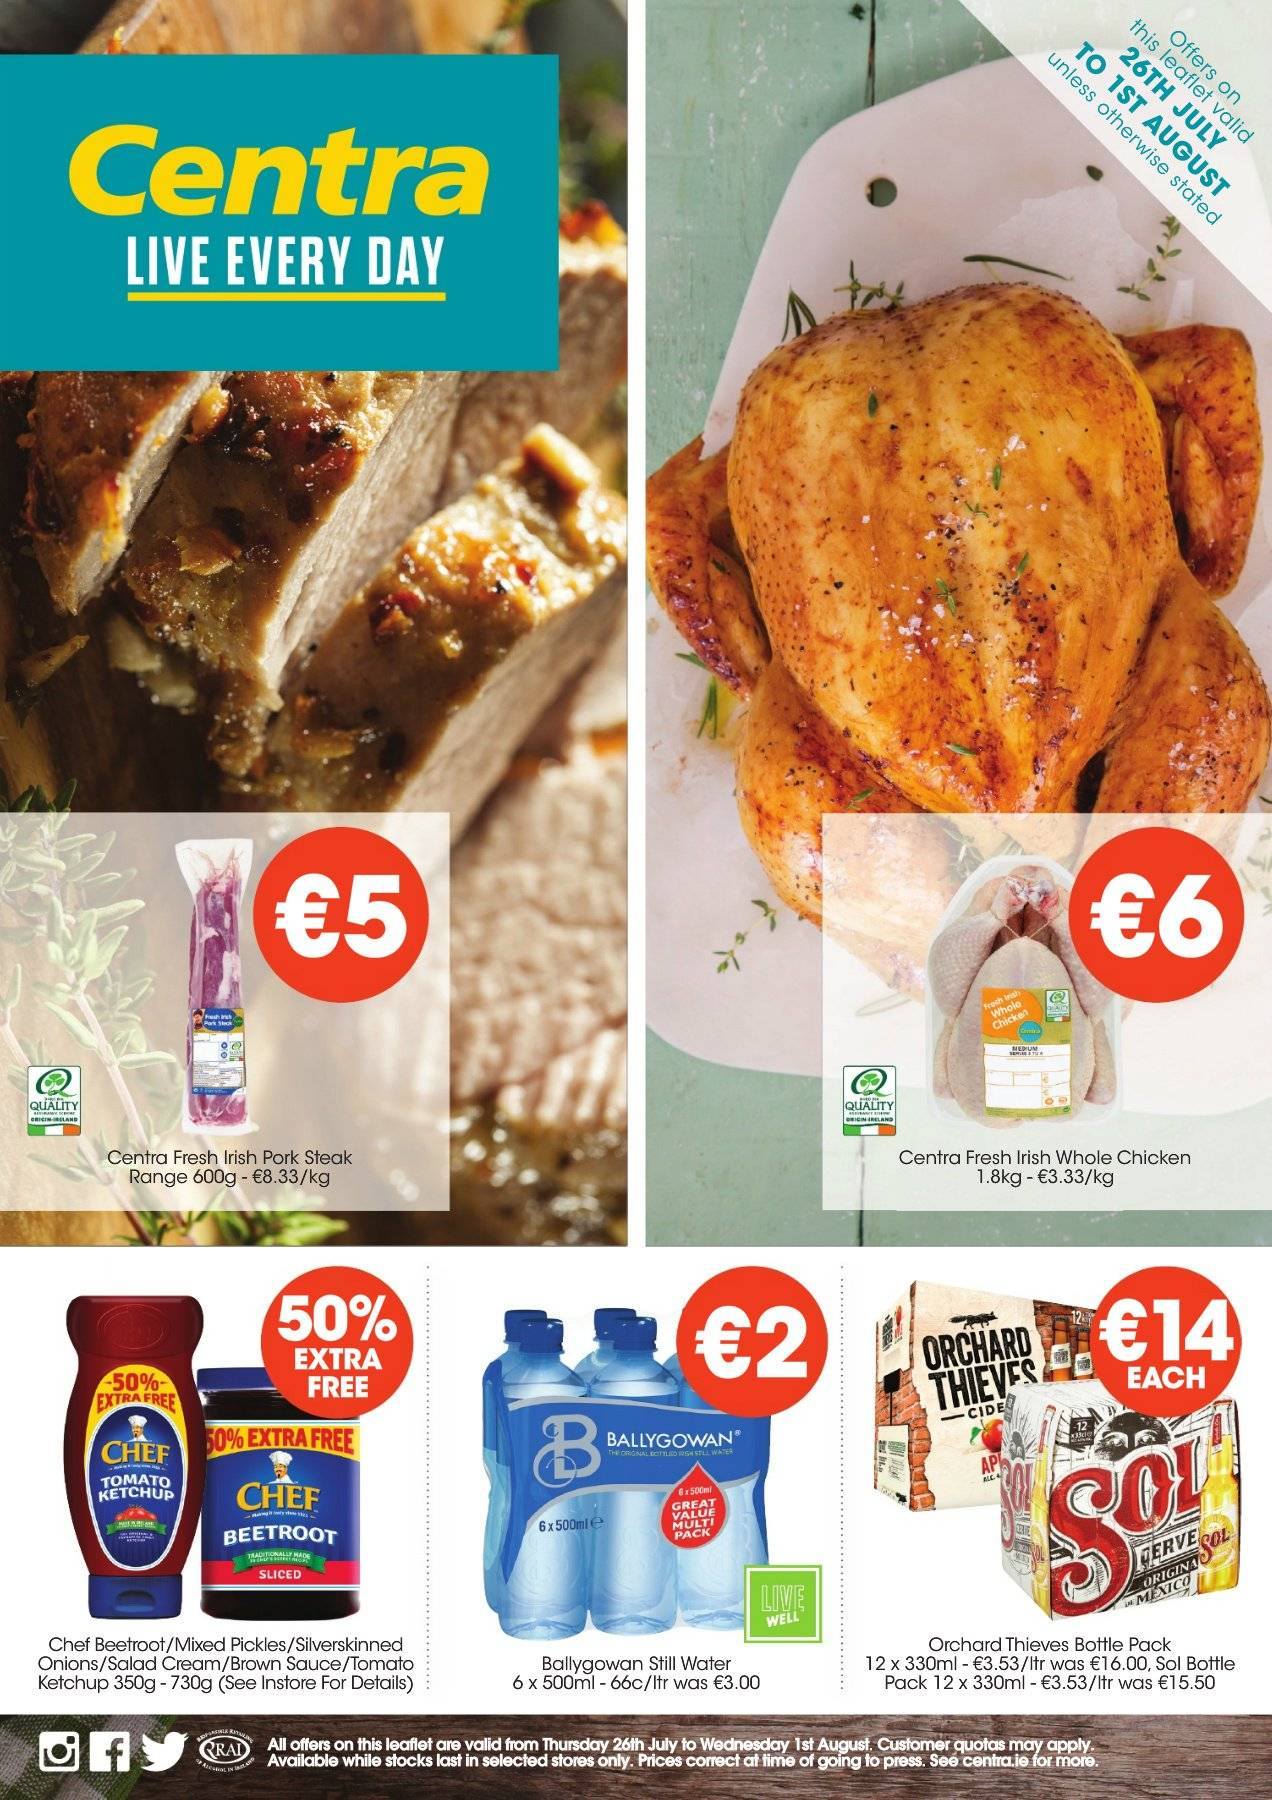 Centra offer  - 26.7.2018 - 1.8.2018 - Sales products - bottle, cream, whole chicken, ketchup, pickles, pork meat, chicken, onion, brown sauce, steak, salad, sauce. Page 1.